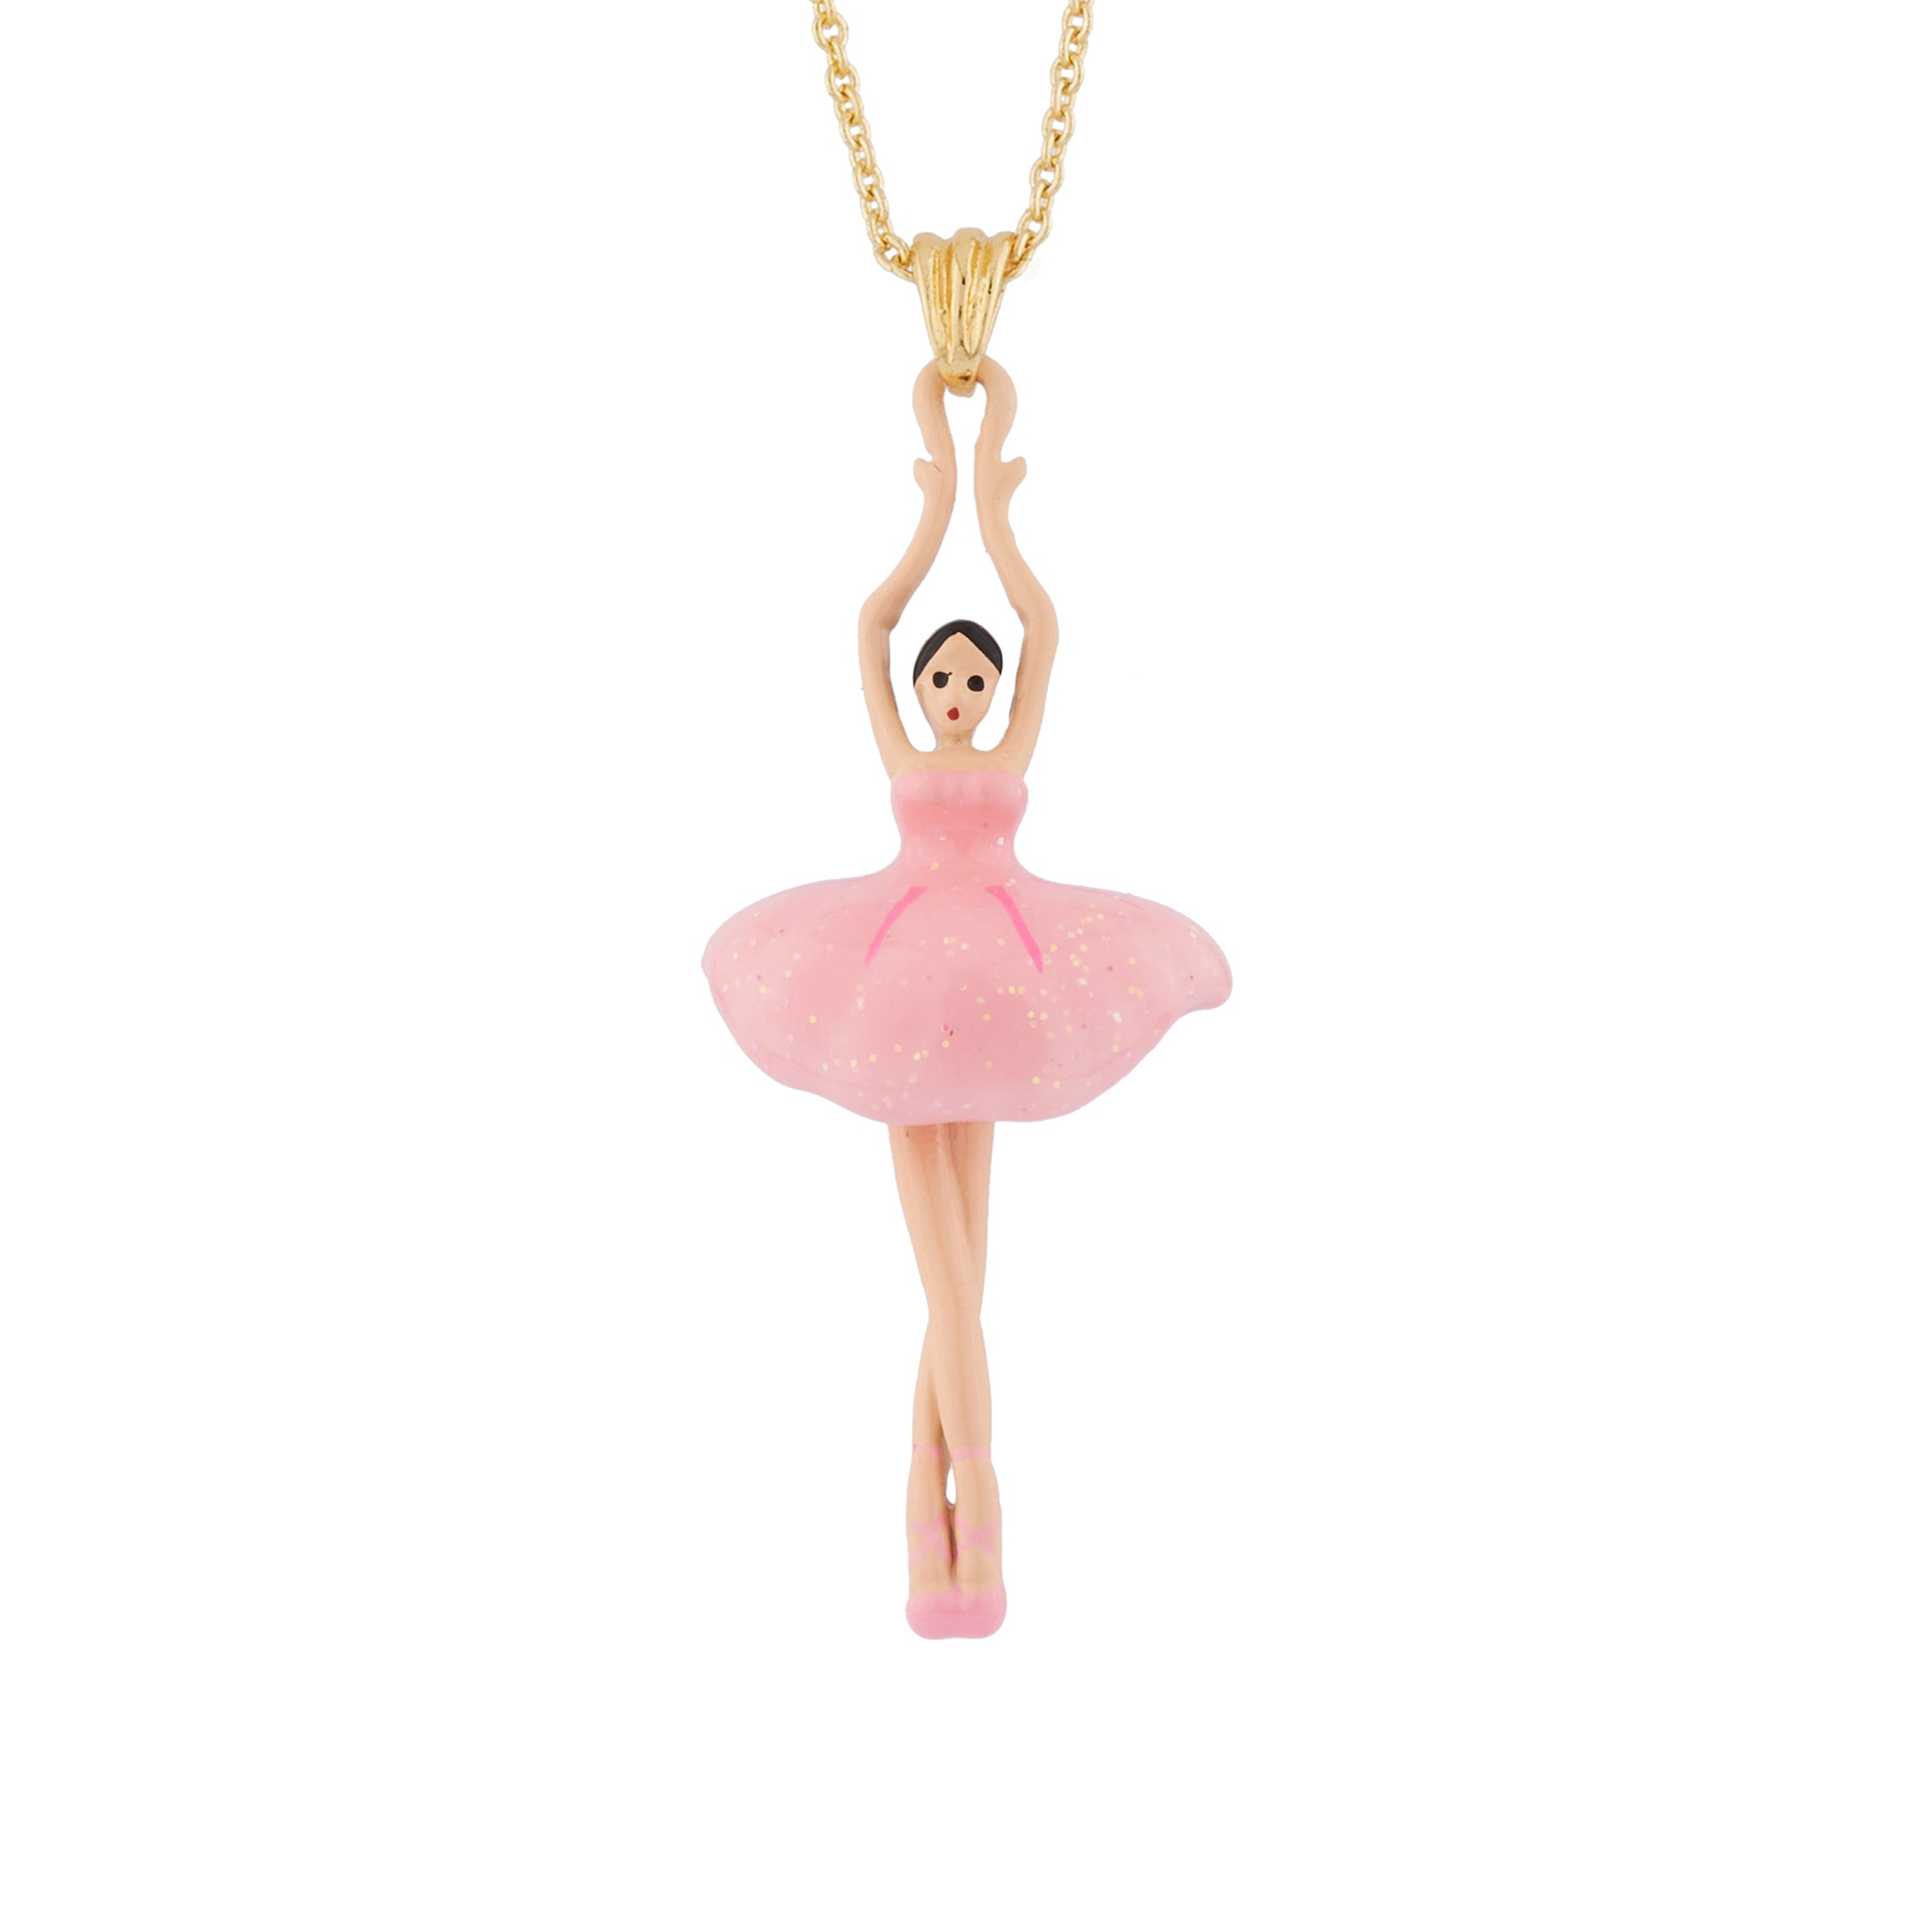 Pendant Necklace with Pink Toe-dancing Ballerina